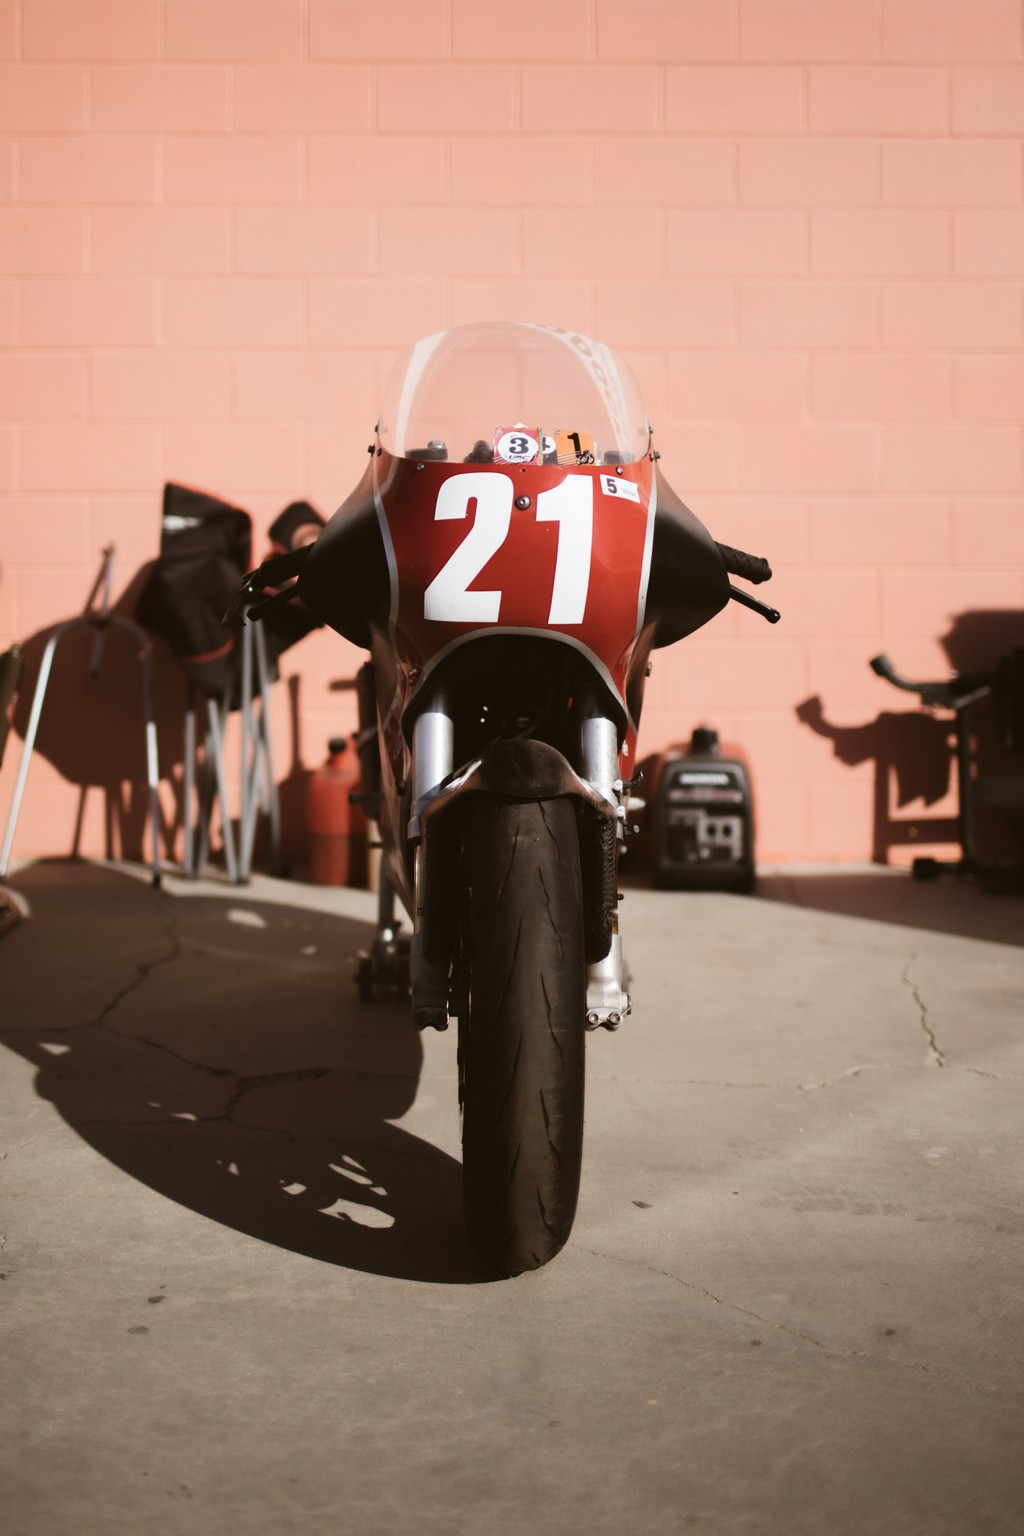 Racing Motorcycle in the pits